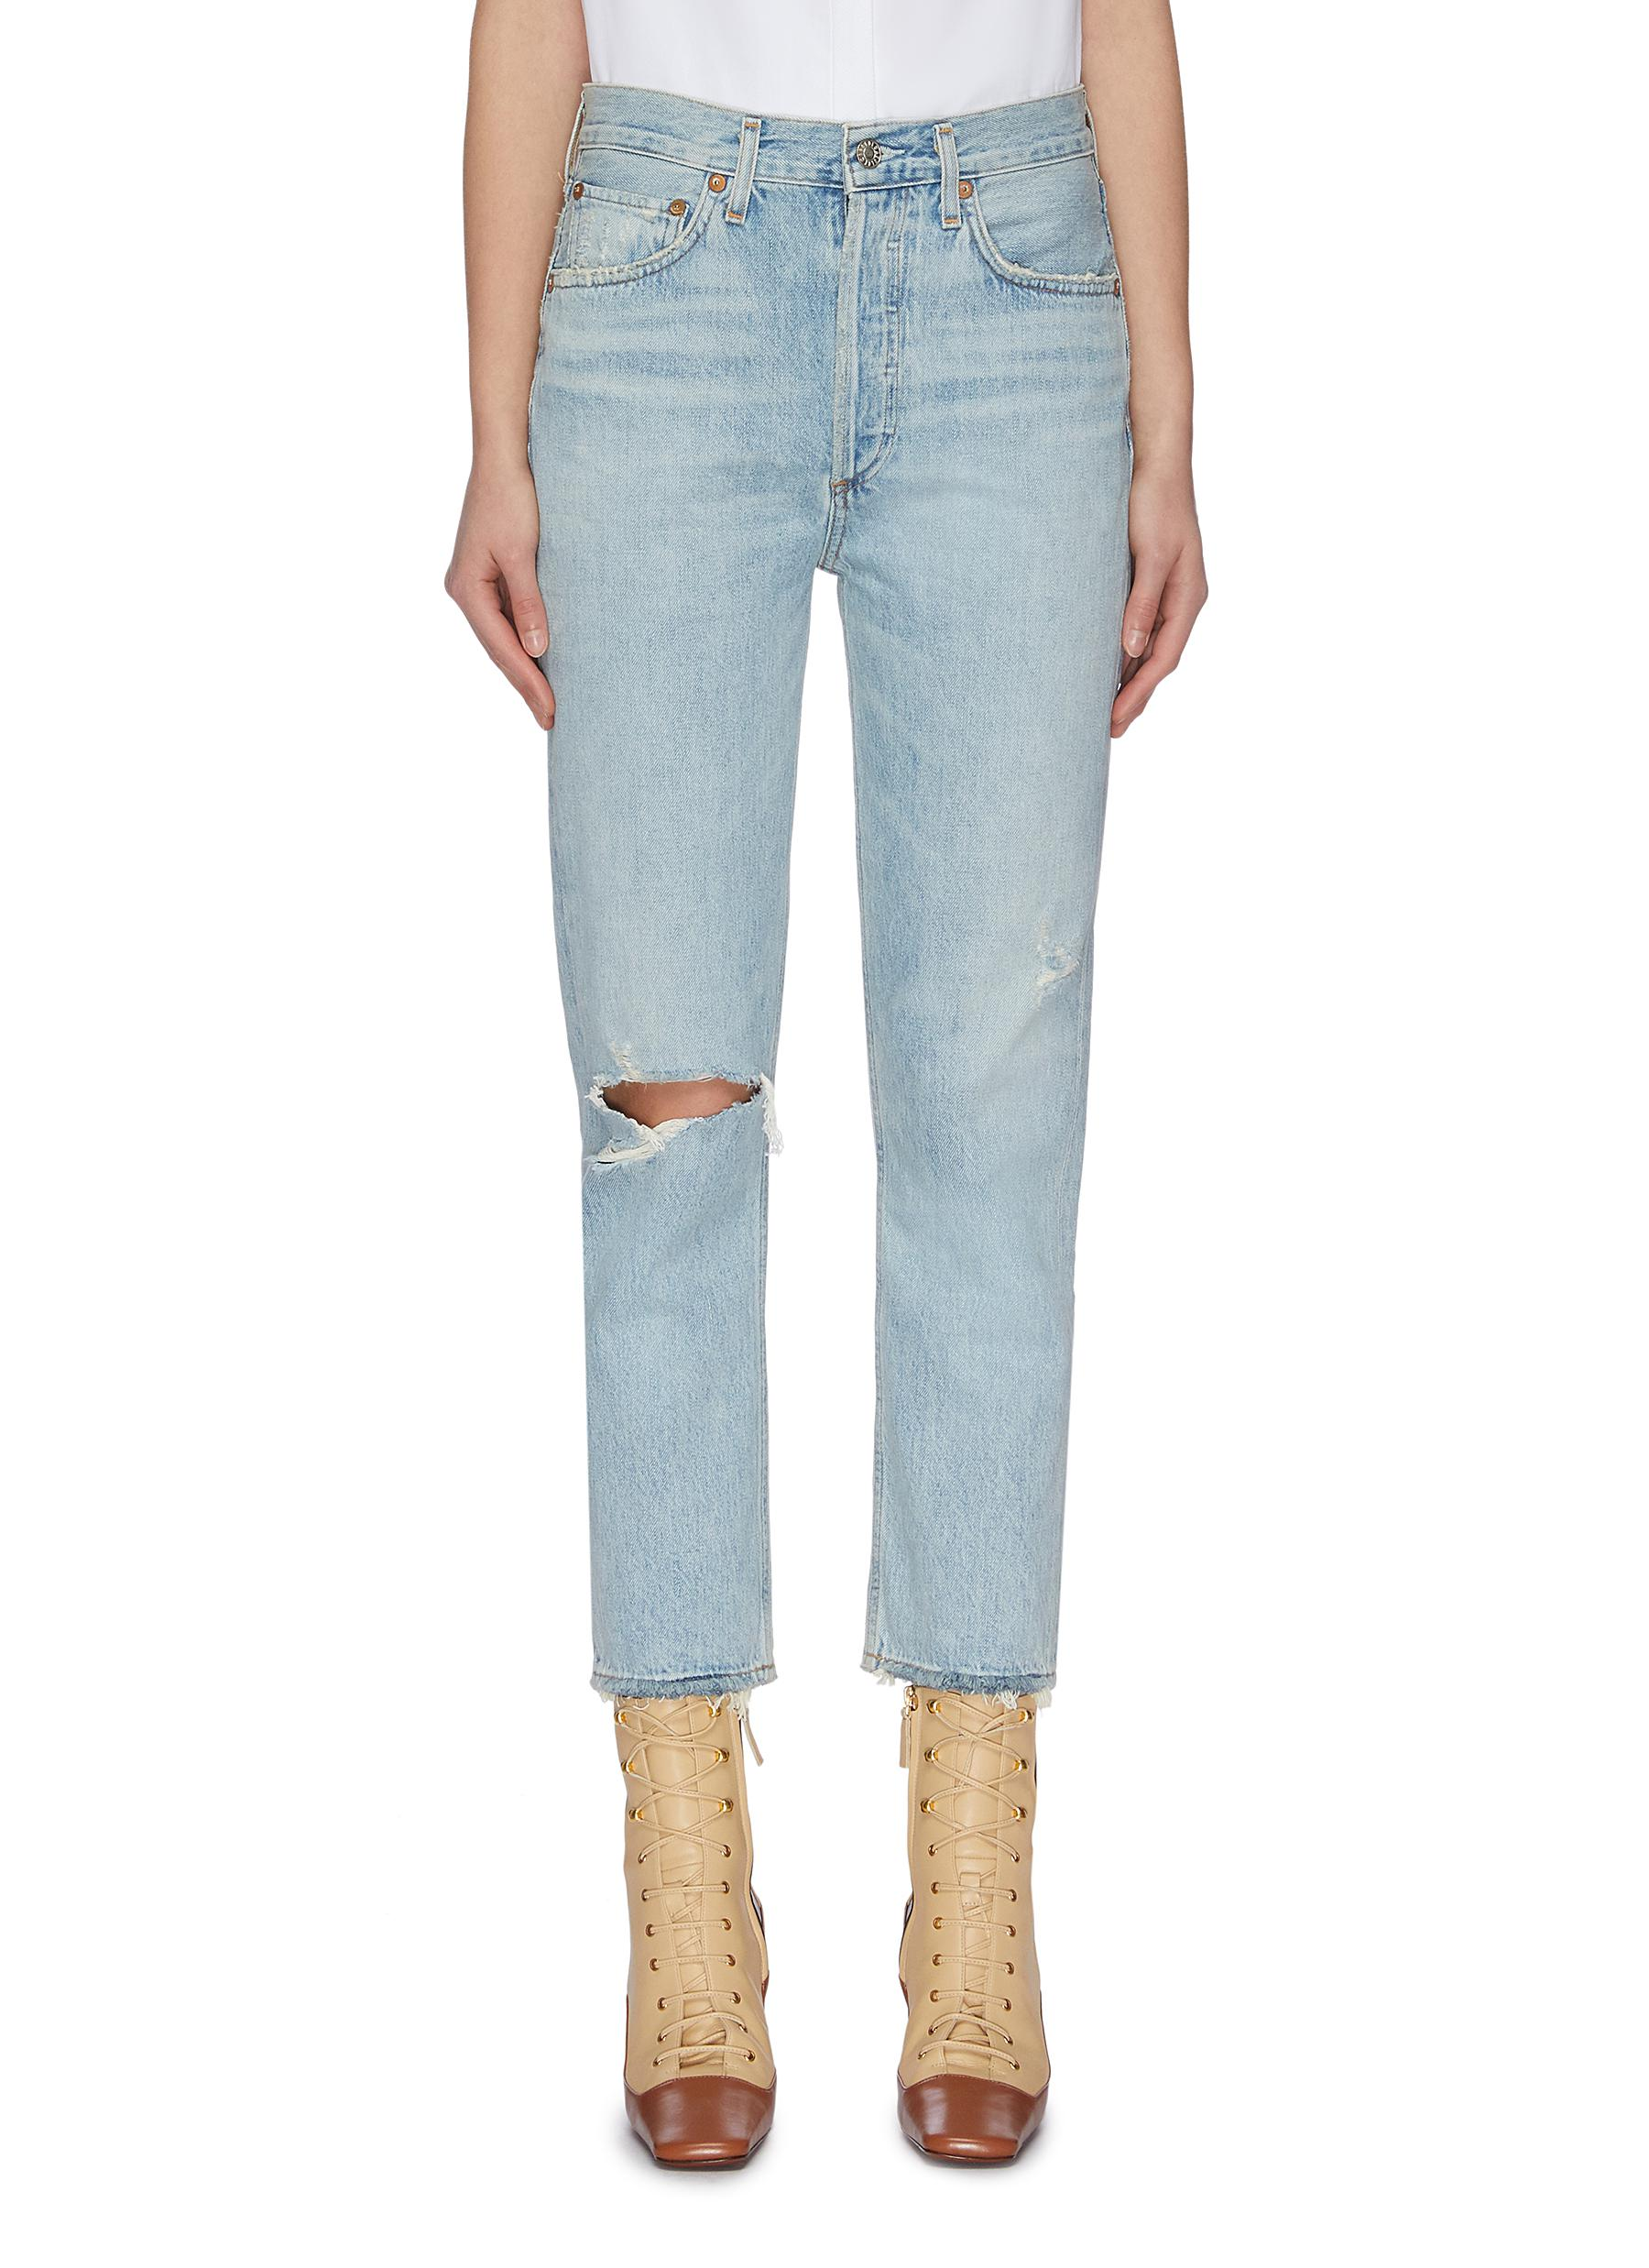 Buy Agolde Jeans 'Riley' ripped knee cropped jeans